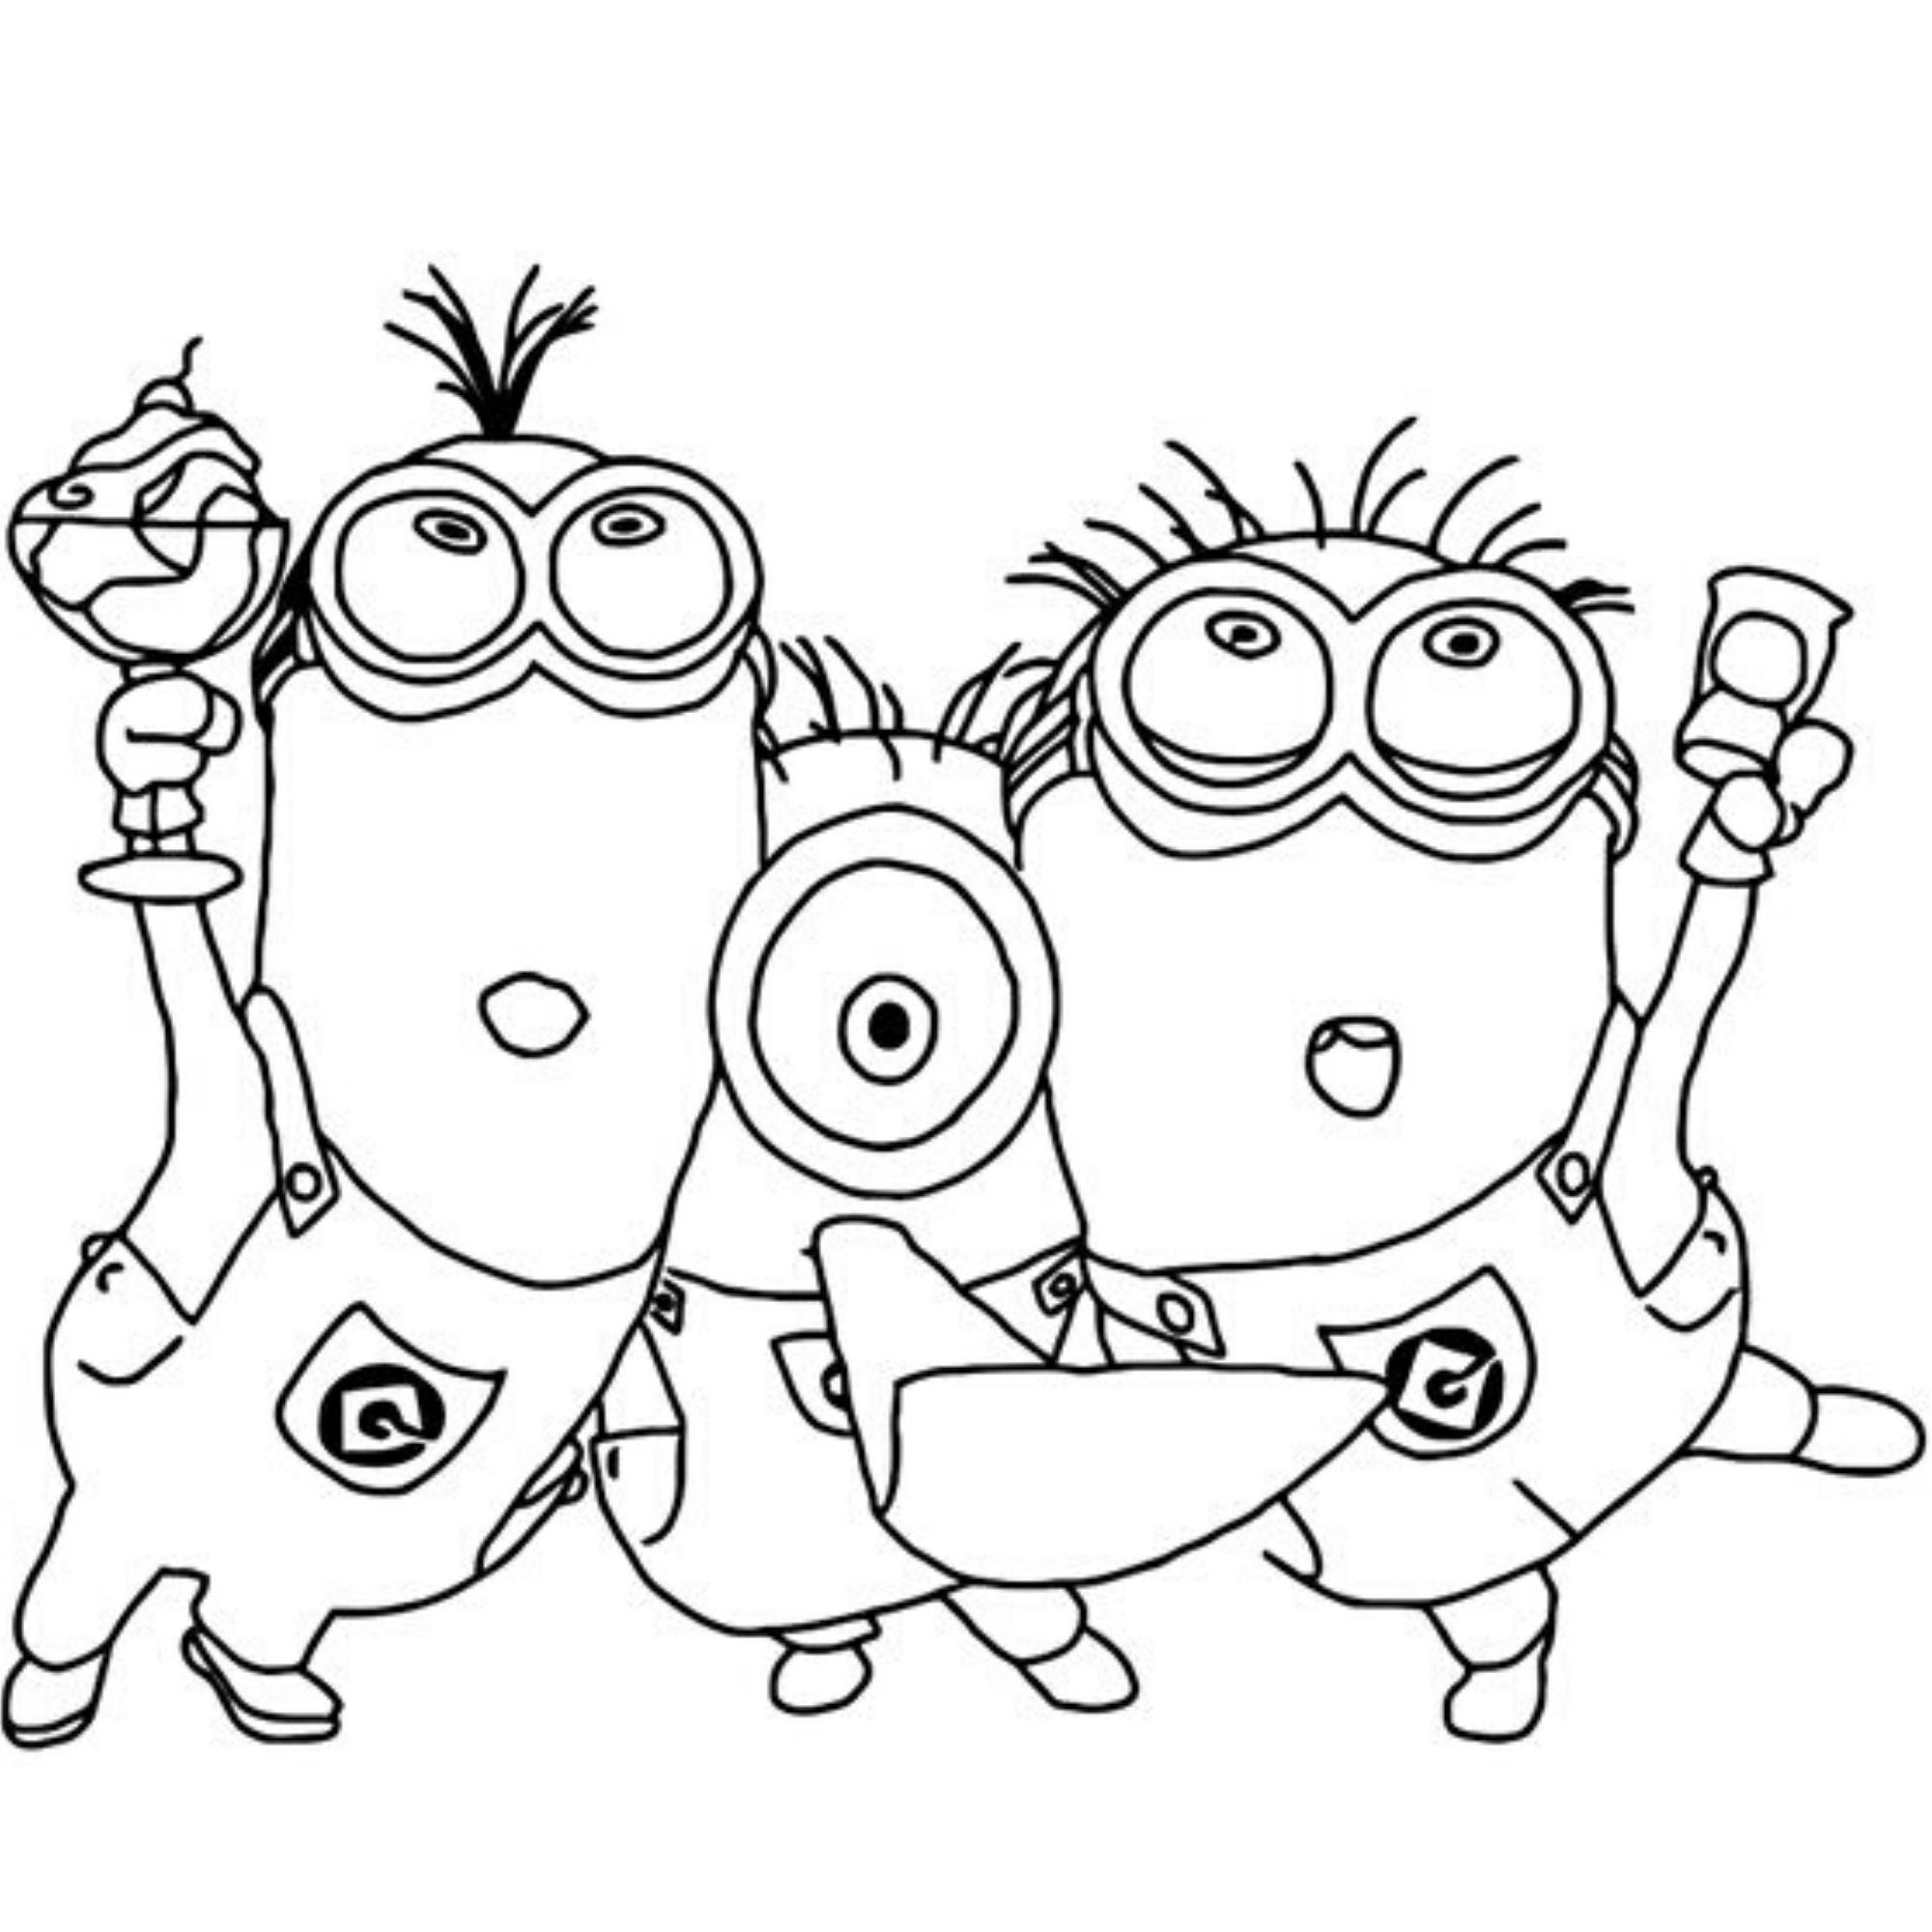 Pin By Olga Nelga On Trolli Minony Moana Monstry Coloring Pages Minion Coloring Pages Princess Coloring Pages